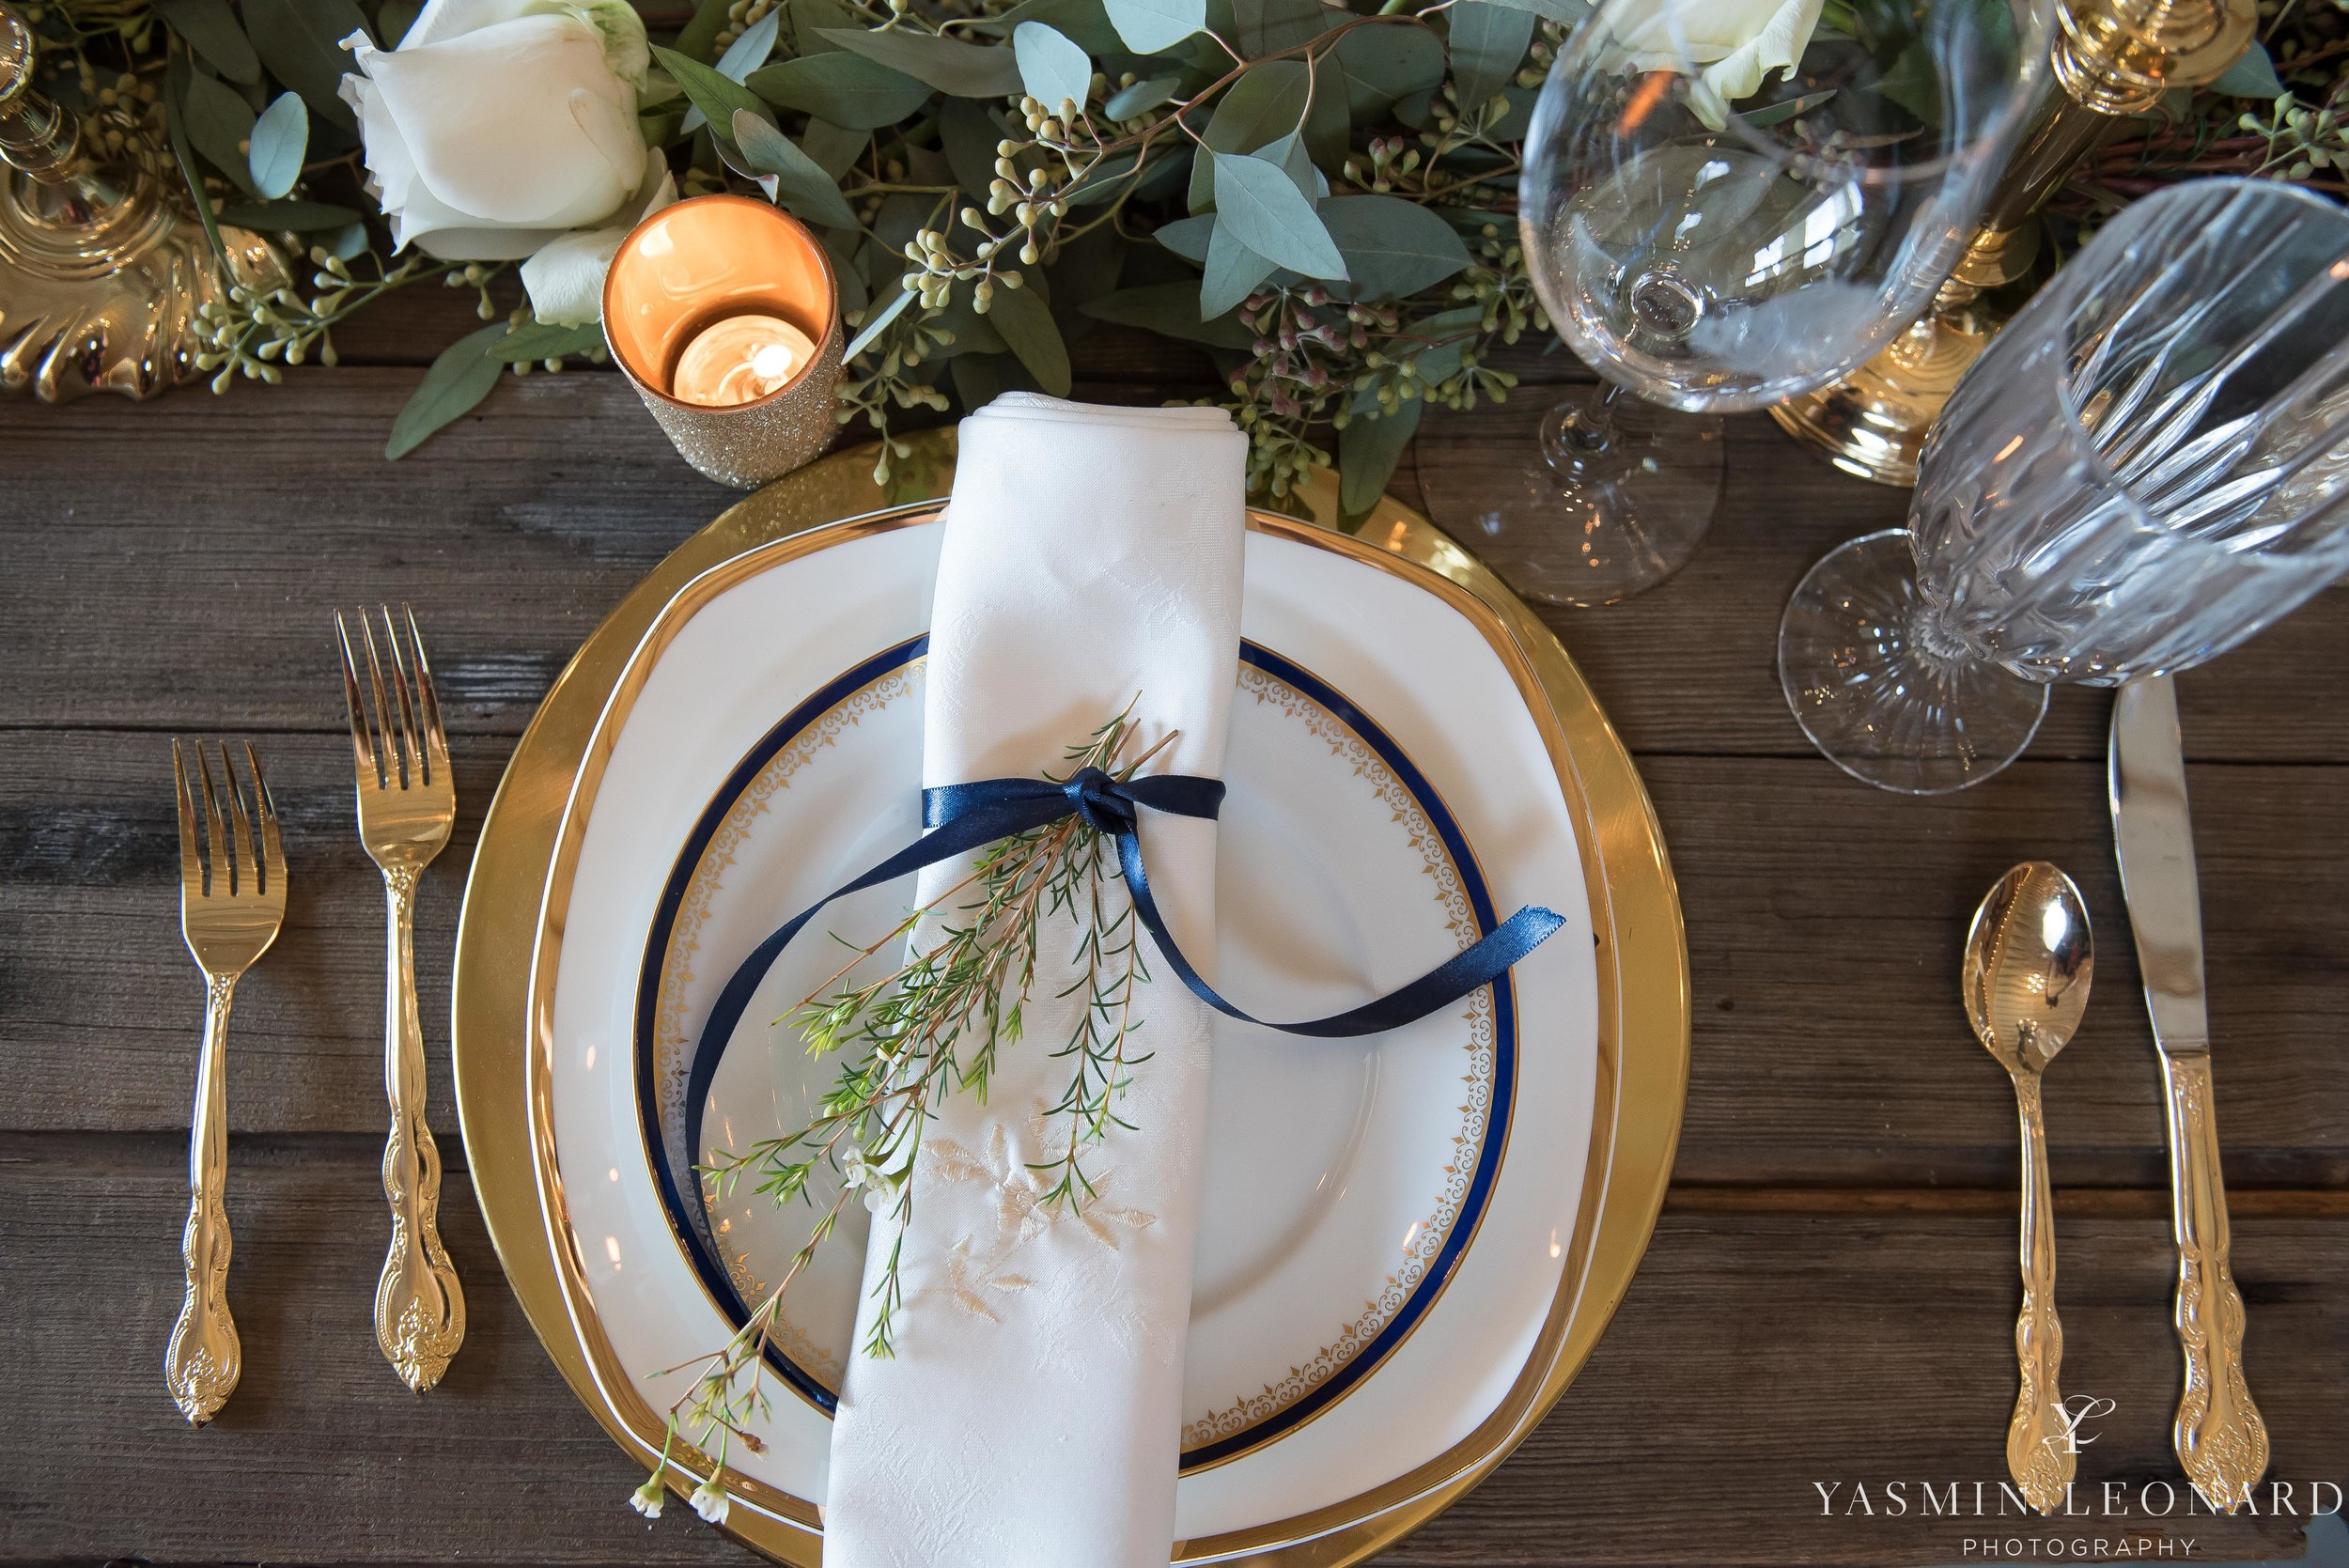 Old Homeplace Vineyard - Grits and Glitter - Dashing Dames Bridal Boutique - Just Priceless - Yasmin Leonard Photography - High Point Weddings - NC Weddings - NC Wedding Venues - High Point Jewelers - NC Wines - NC Vineyards - Cupcake Cuties-25.jpg